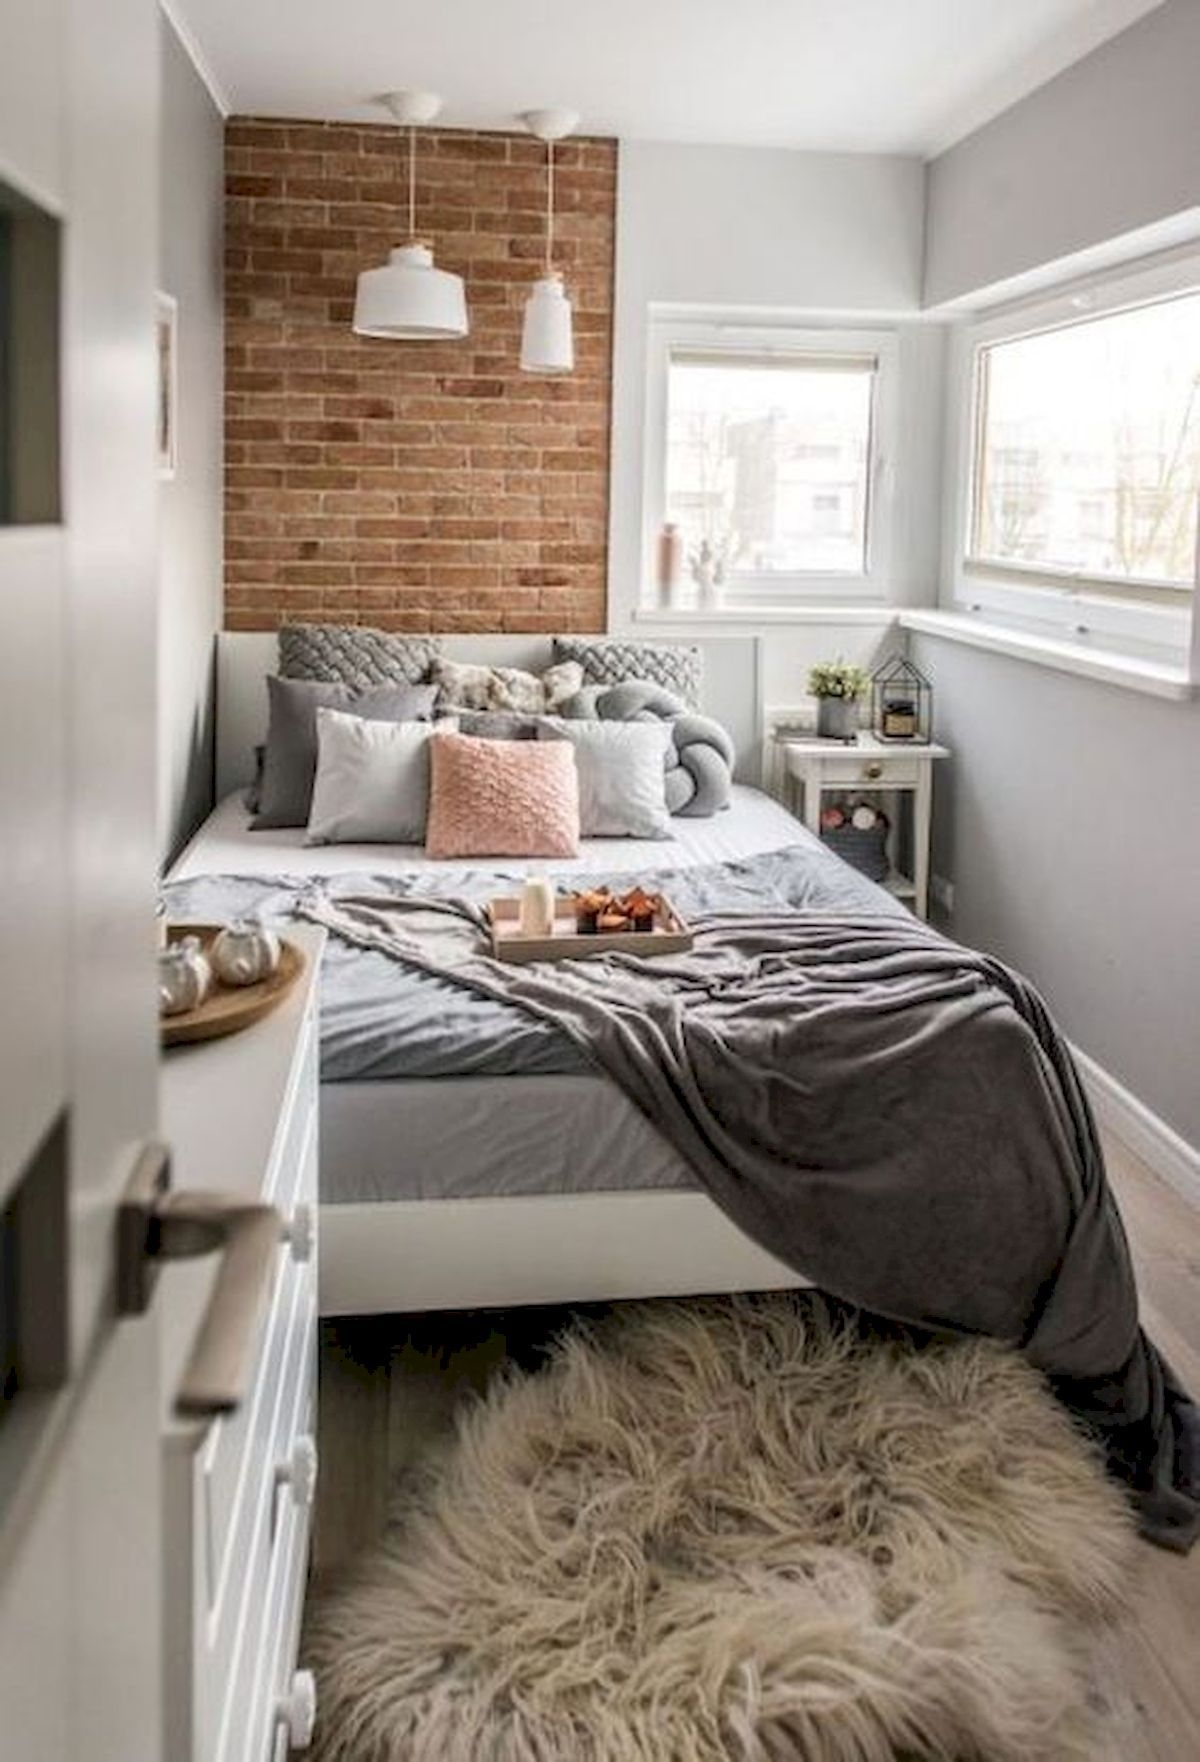 Magnificent Design Ideas for Bedrooms On Magnificent 45 Awesome Small Apartment Bedroom Design and Decor Ideas On Design Ideas for Bedrooms